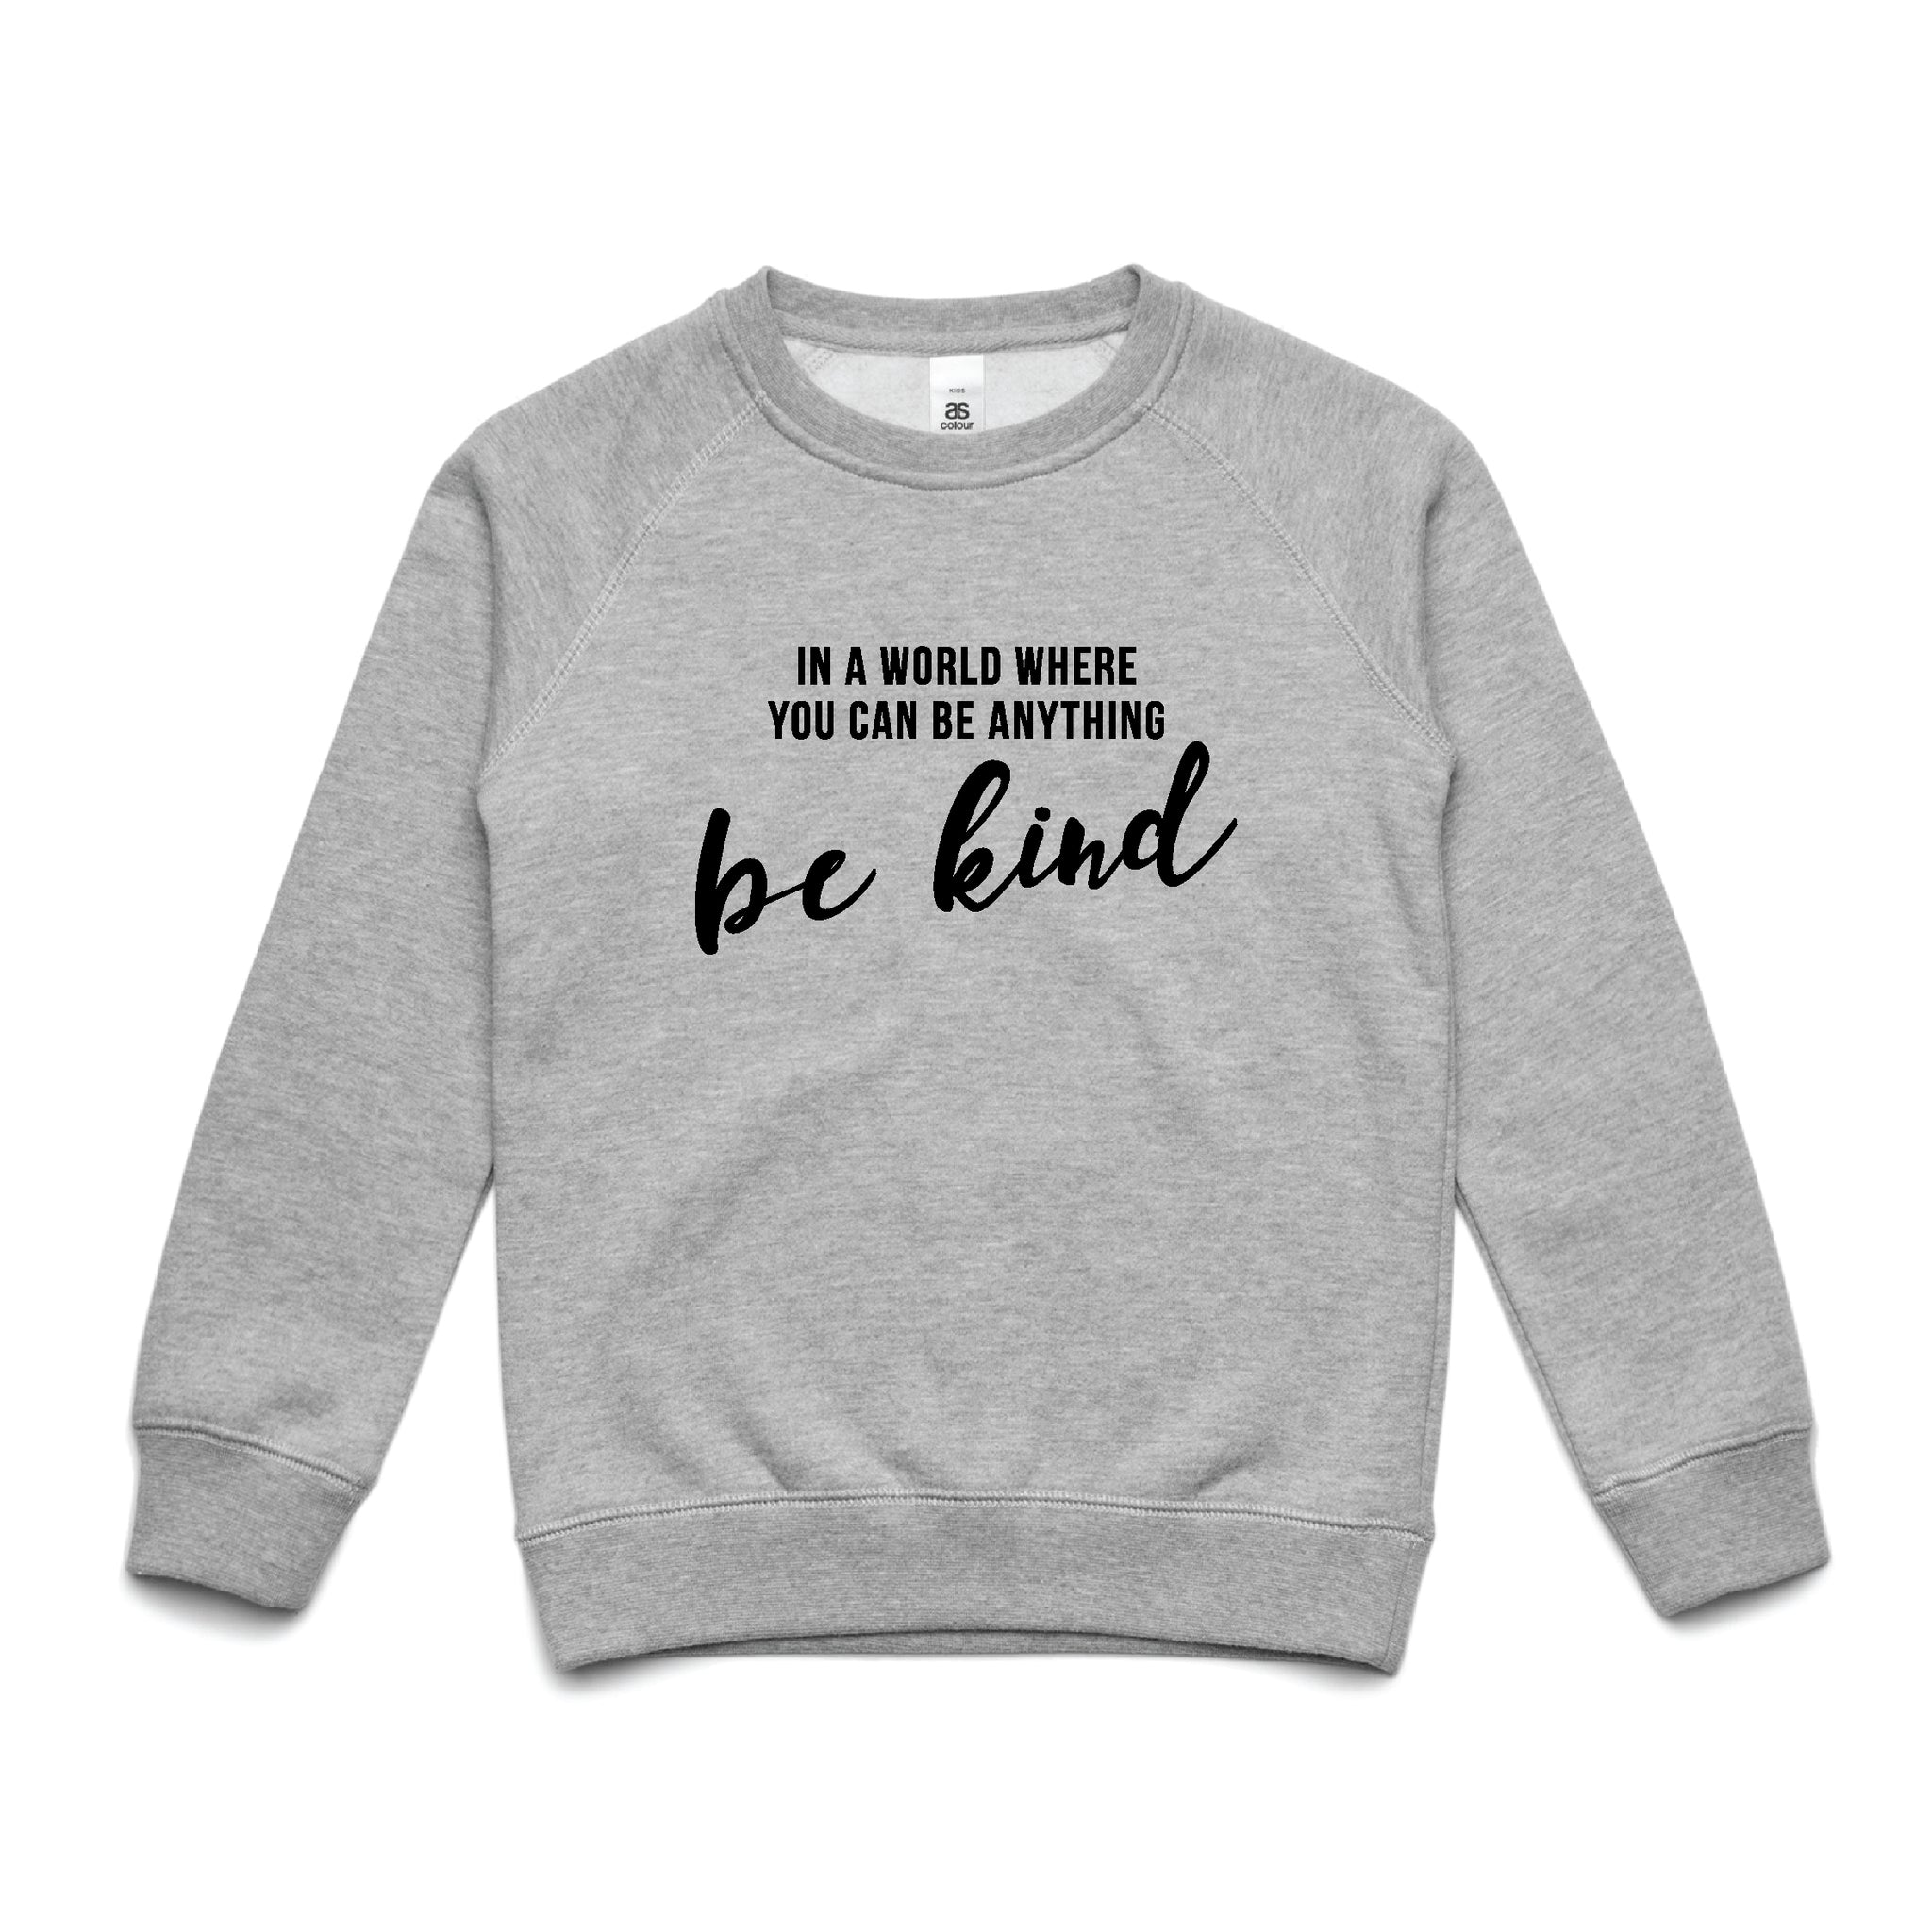 Be Kind Kids Crew